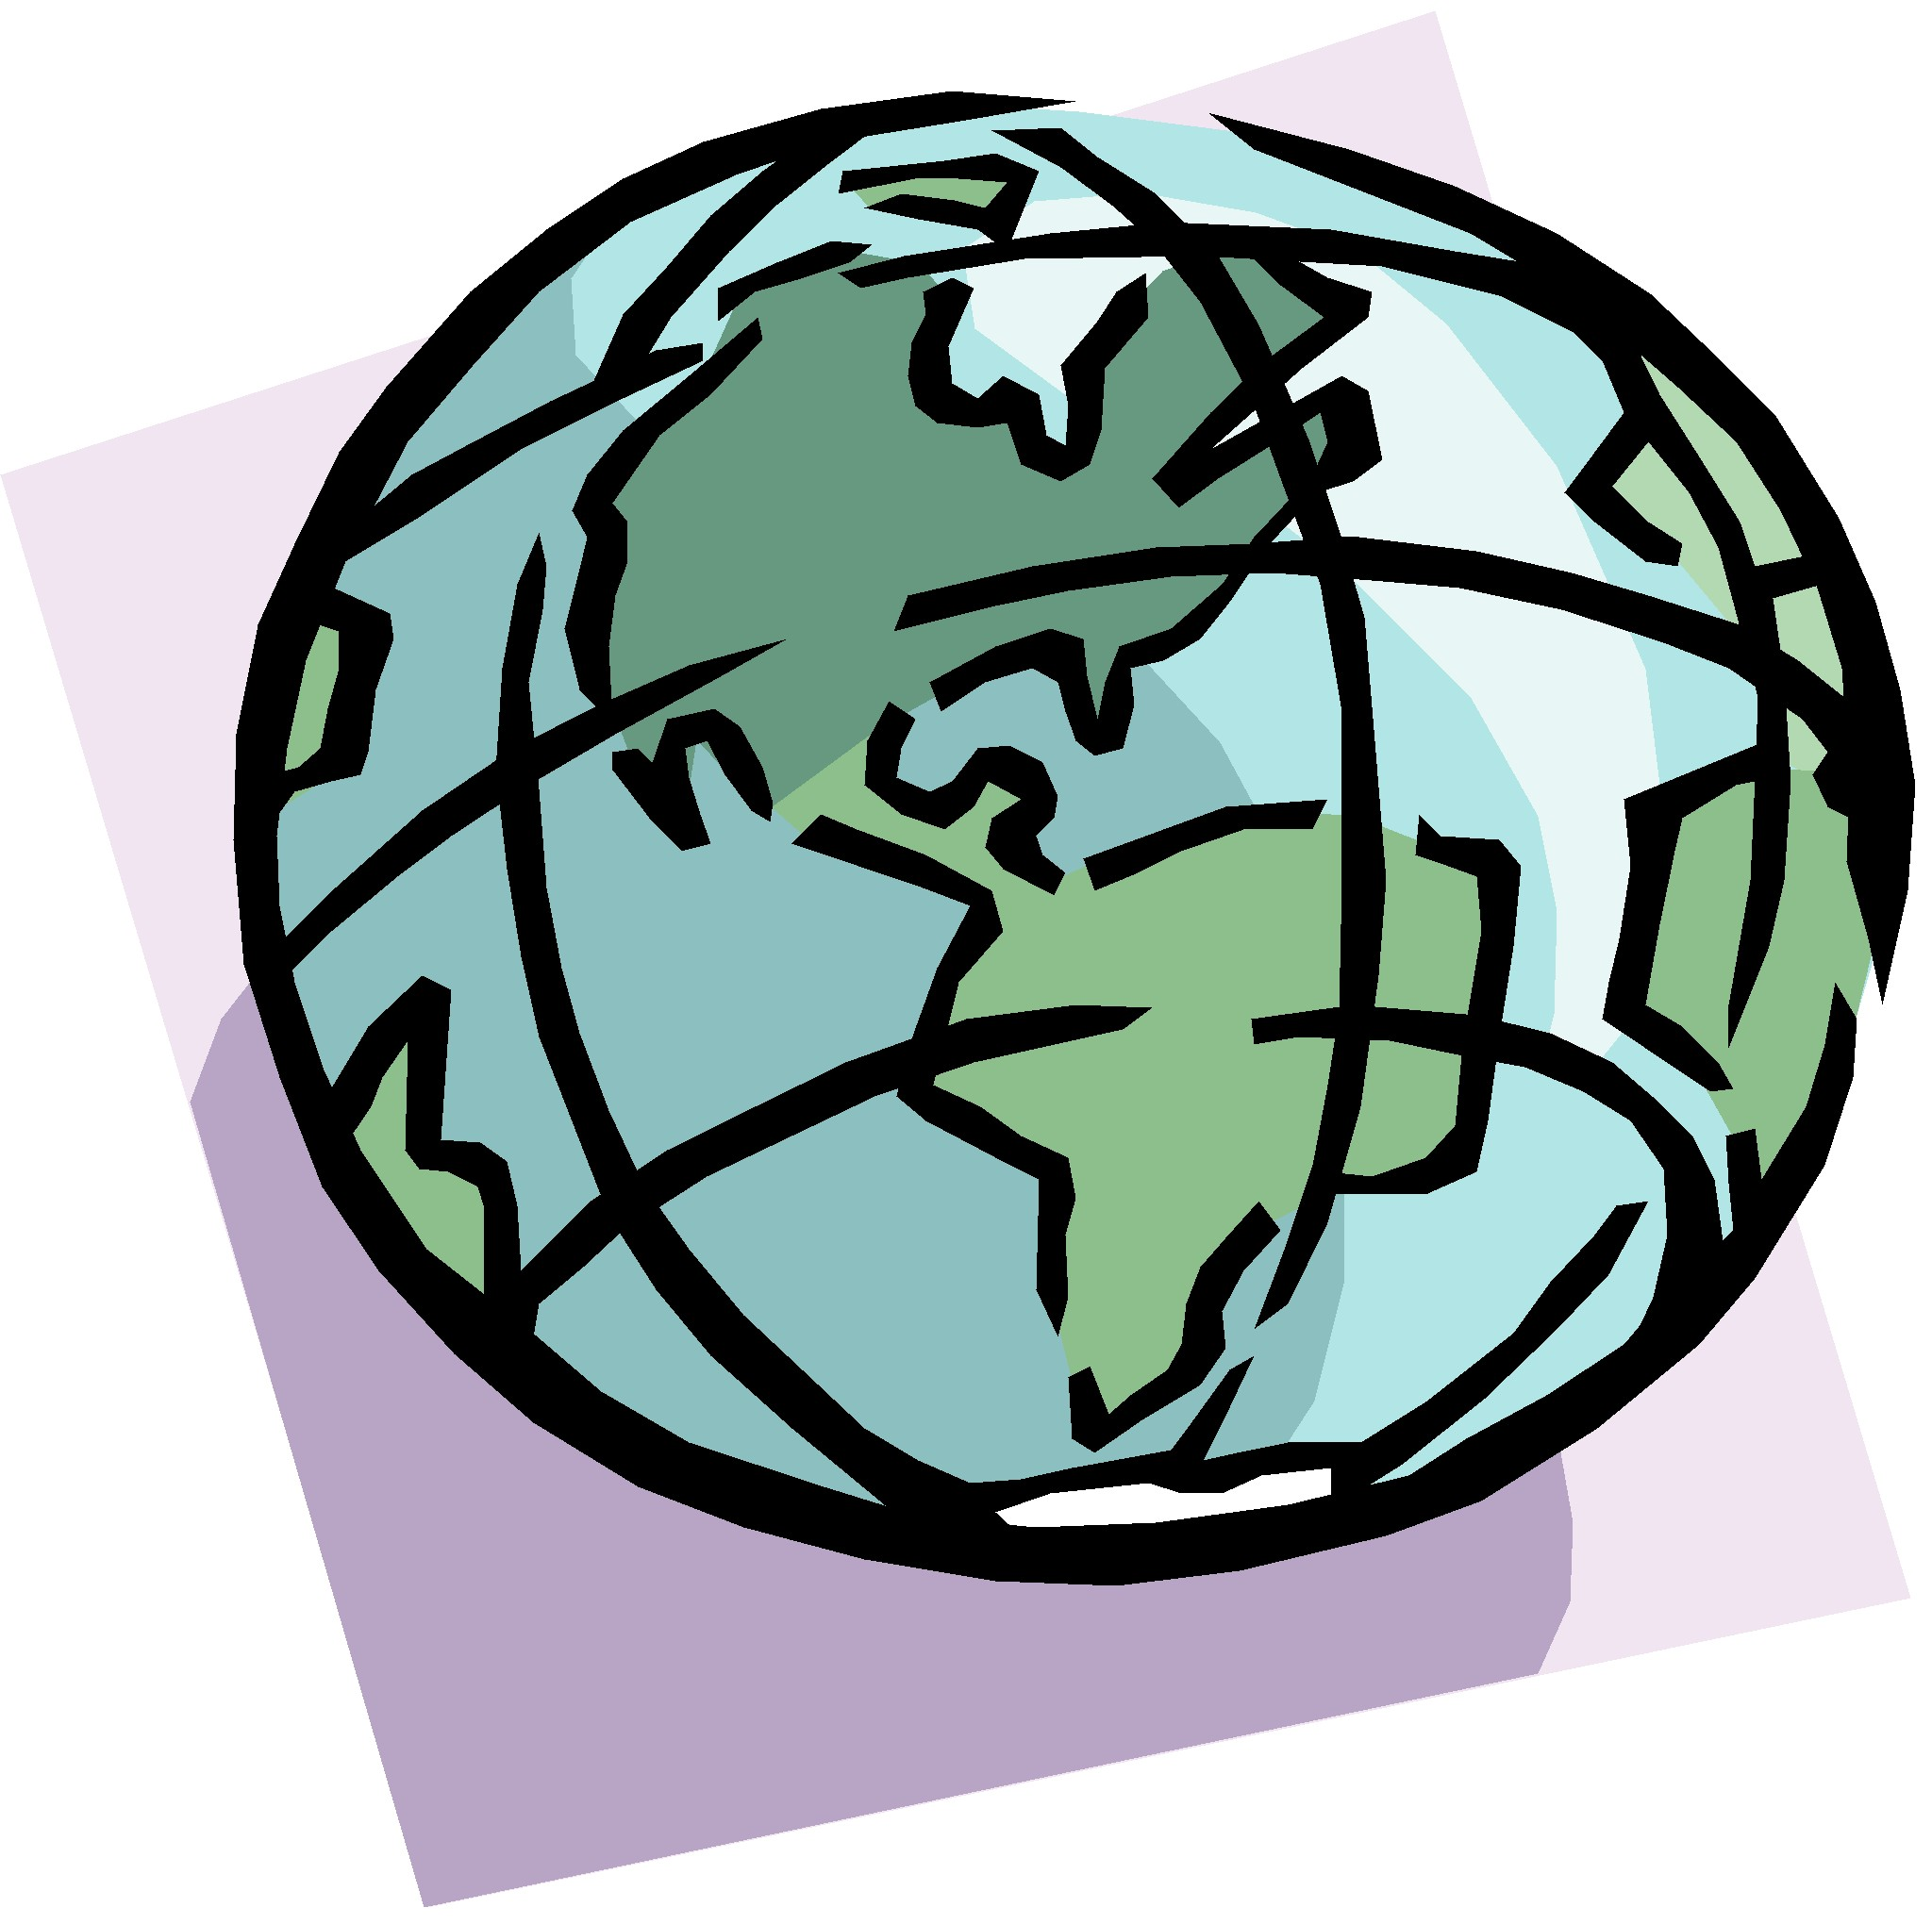 World History Clip Art - Cliparts.co